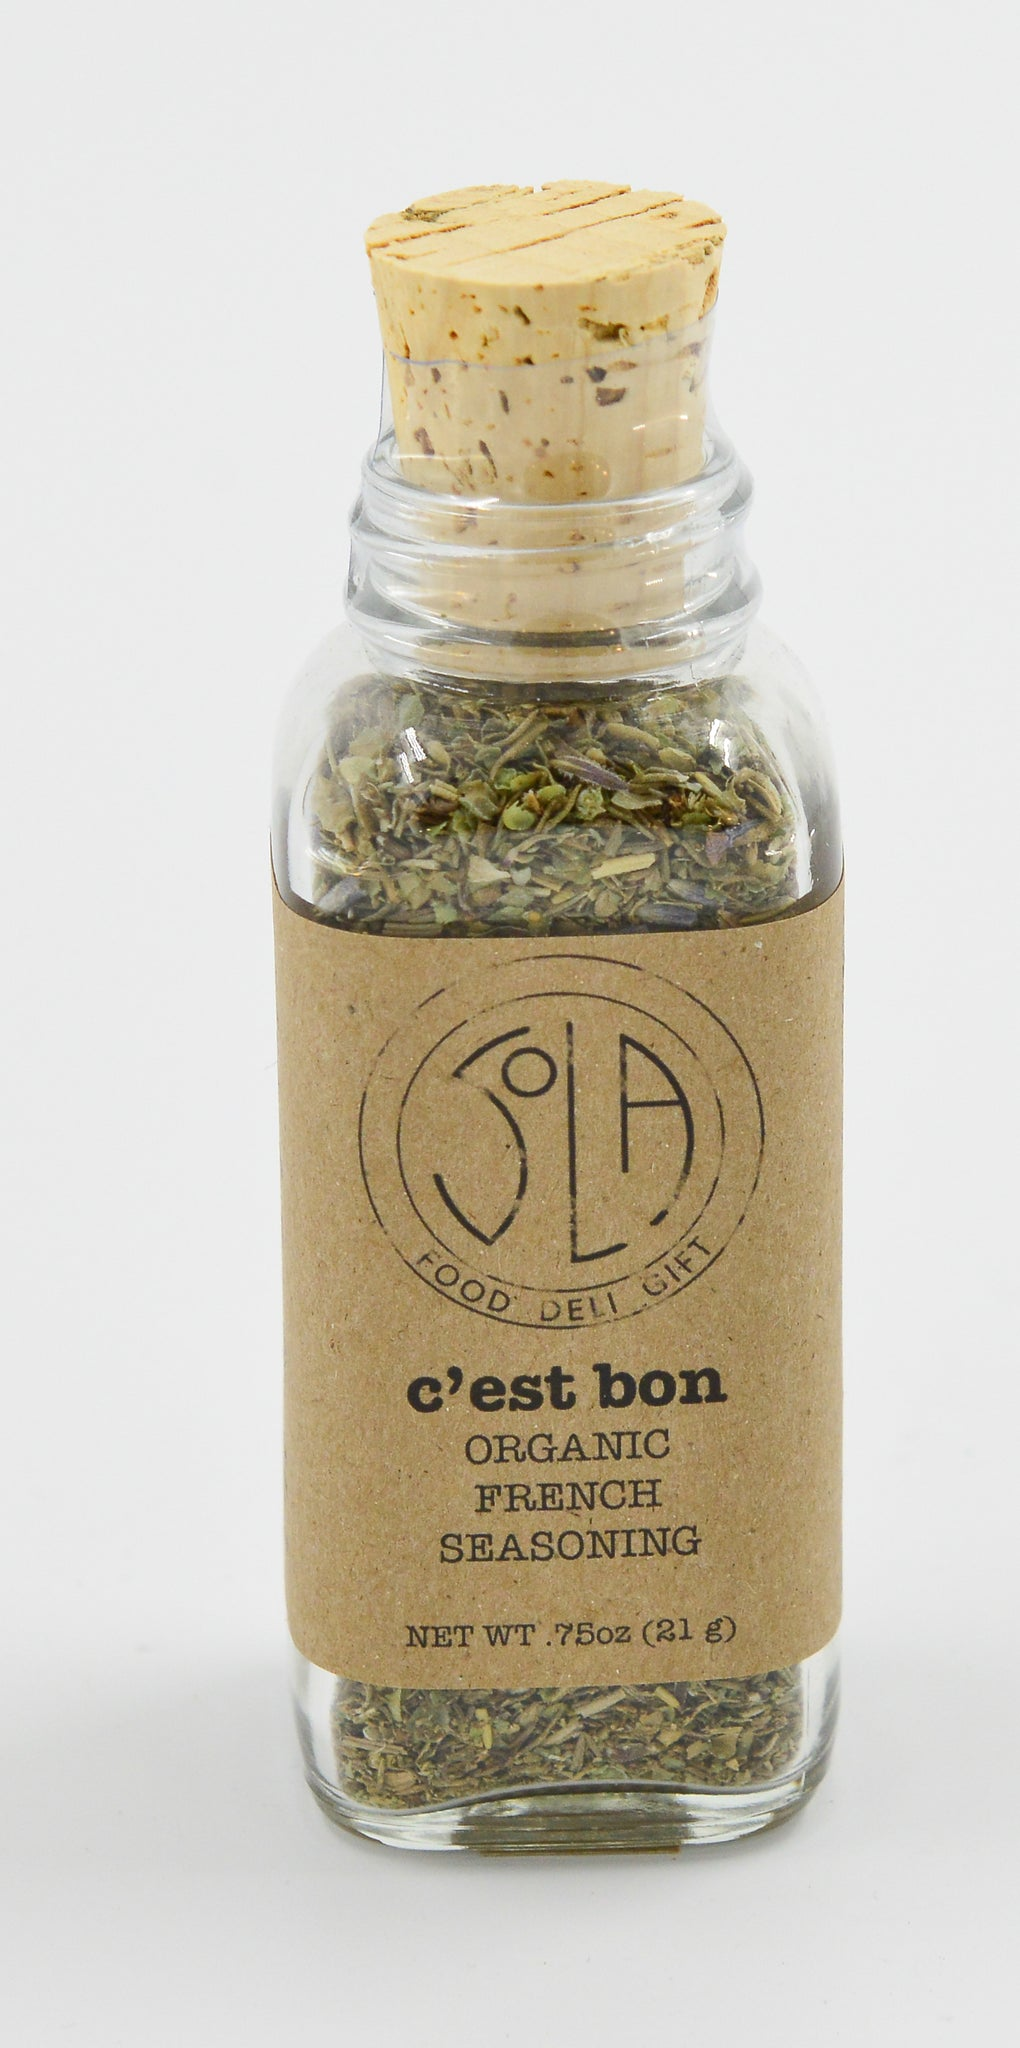 c'est bon Organic French Seasoning - 318 Art and Garden